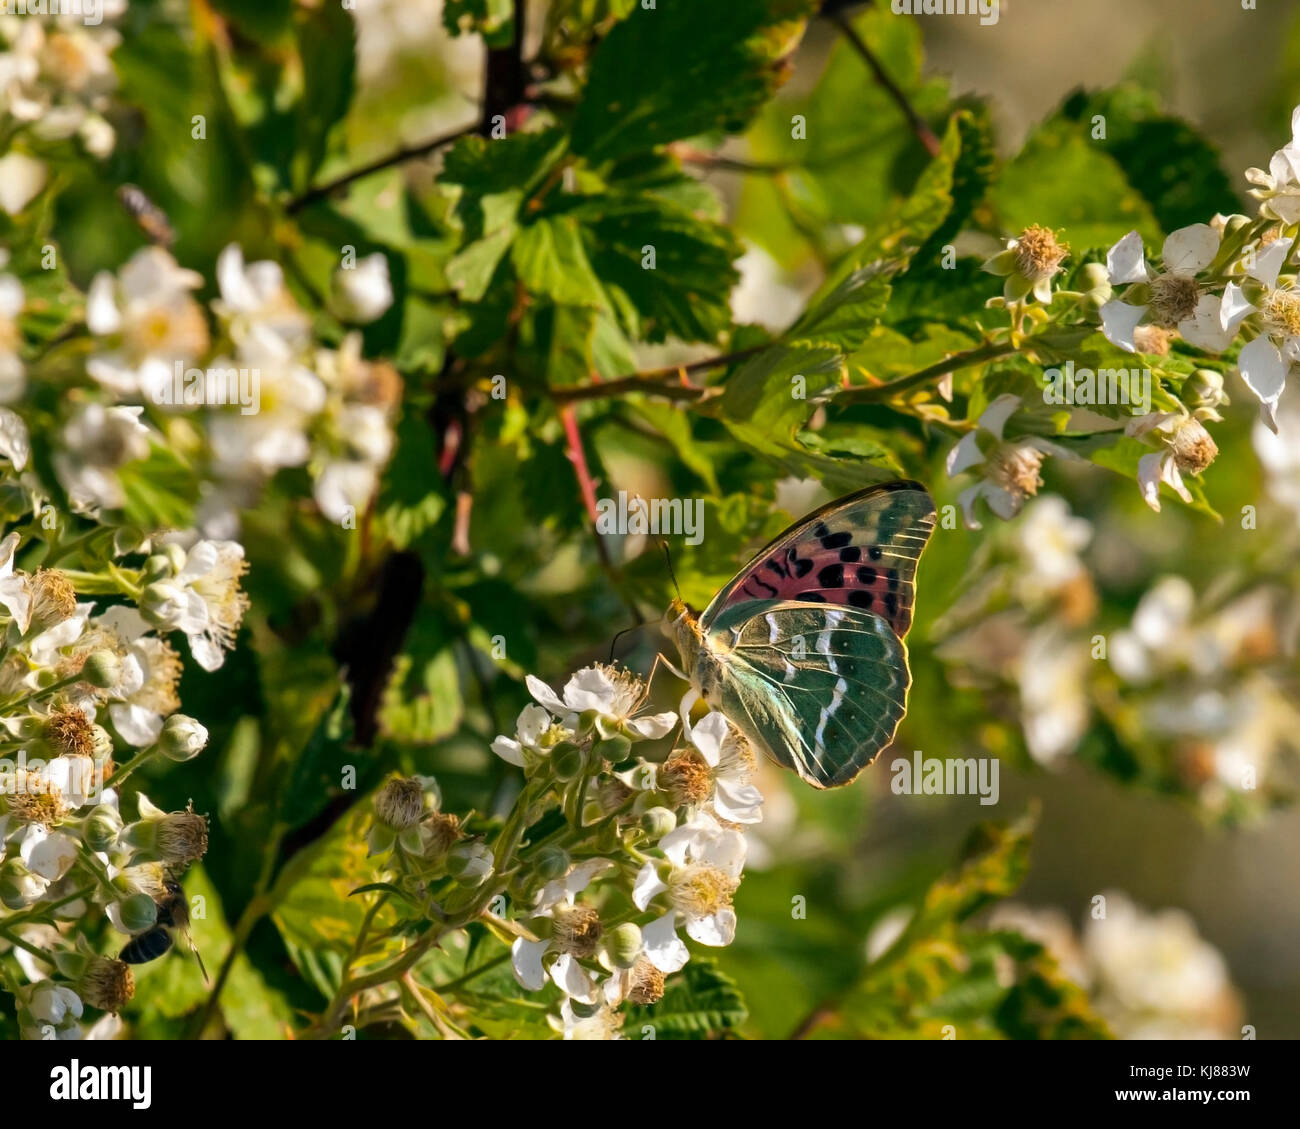 Cardinal Fritillary butterfly Argynnis pandora basking in the sun on the flowerhead of bramble blossom at Riaza - Stock Image